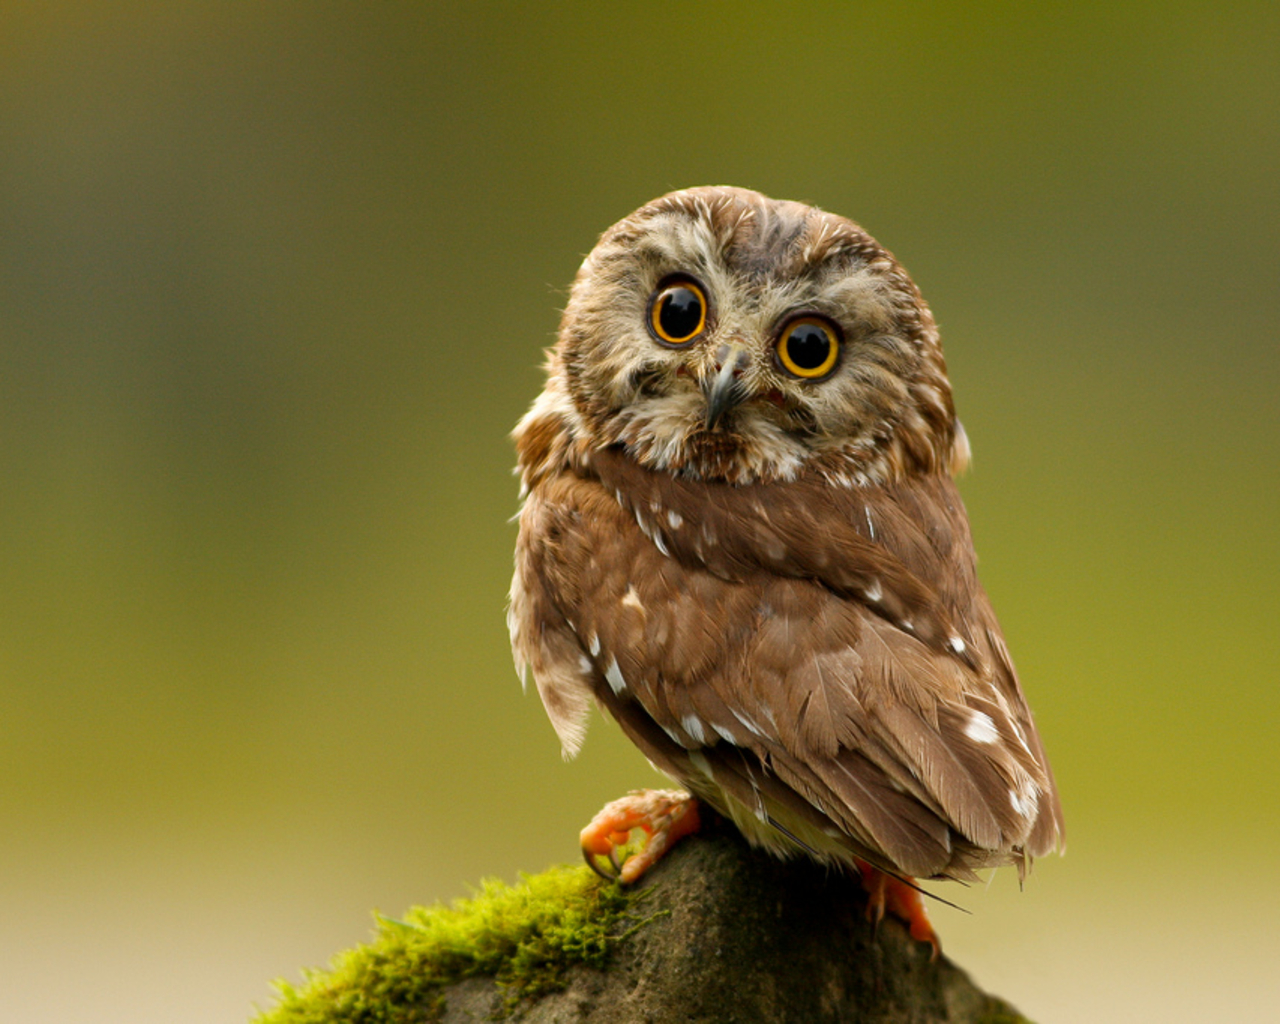 Free Download Cute Owl Wallpaper 1280x1024 For Your Desktop